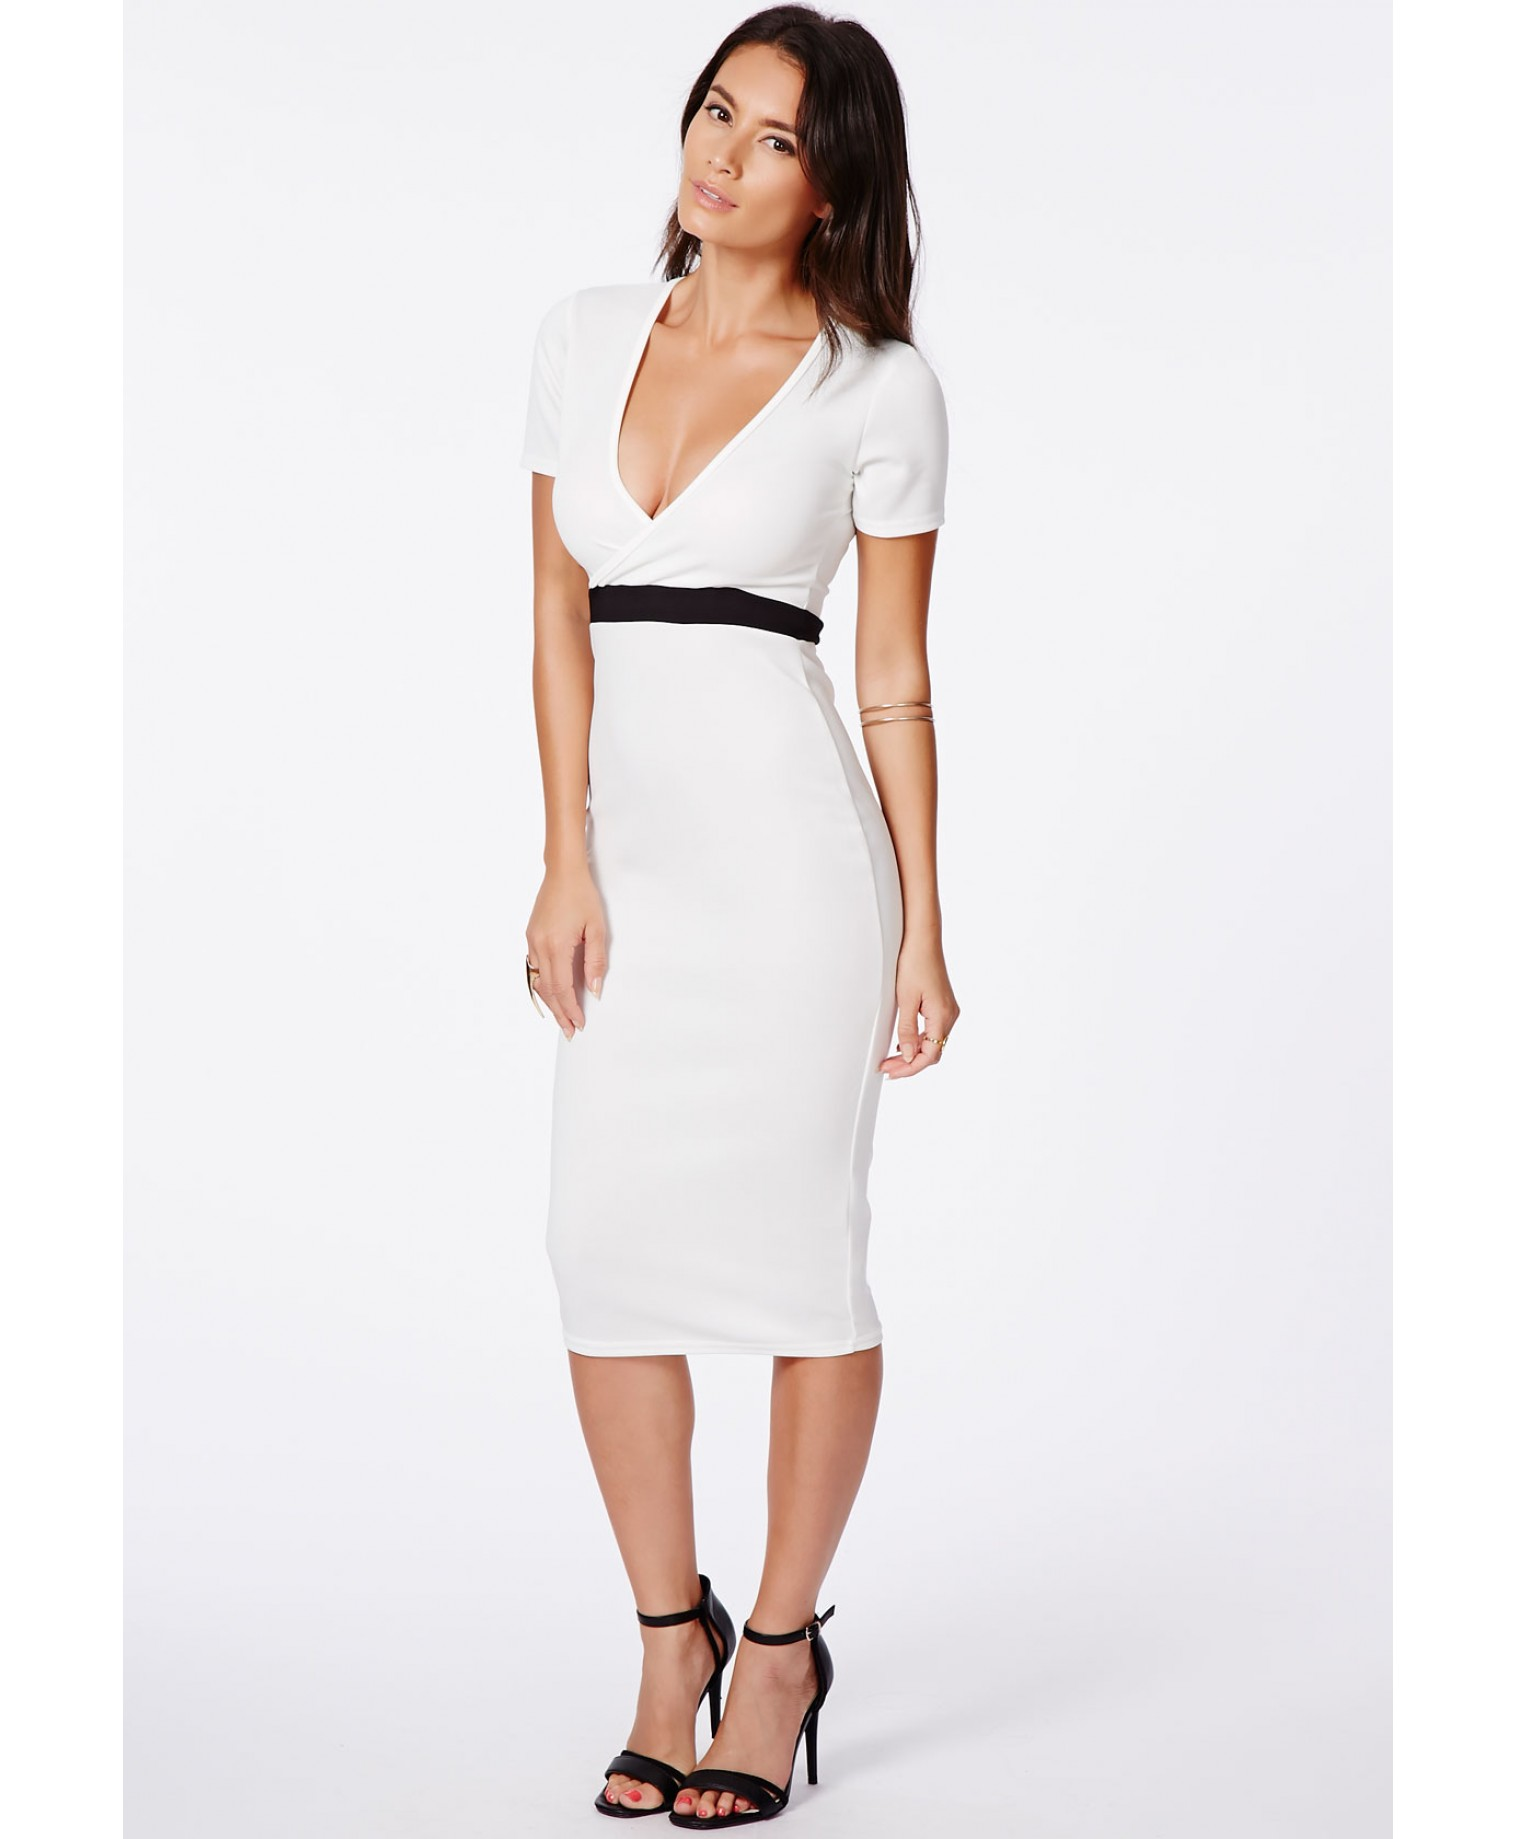 Verda wrap over monochrome contrast midi dress 4